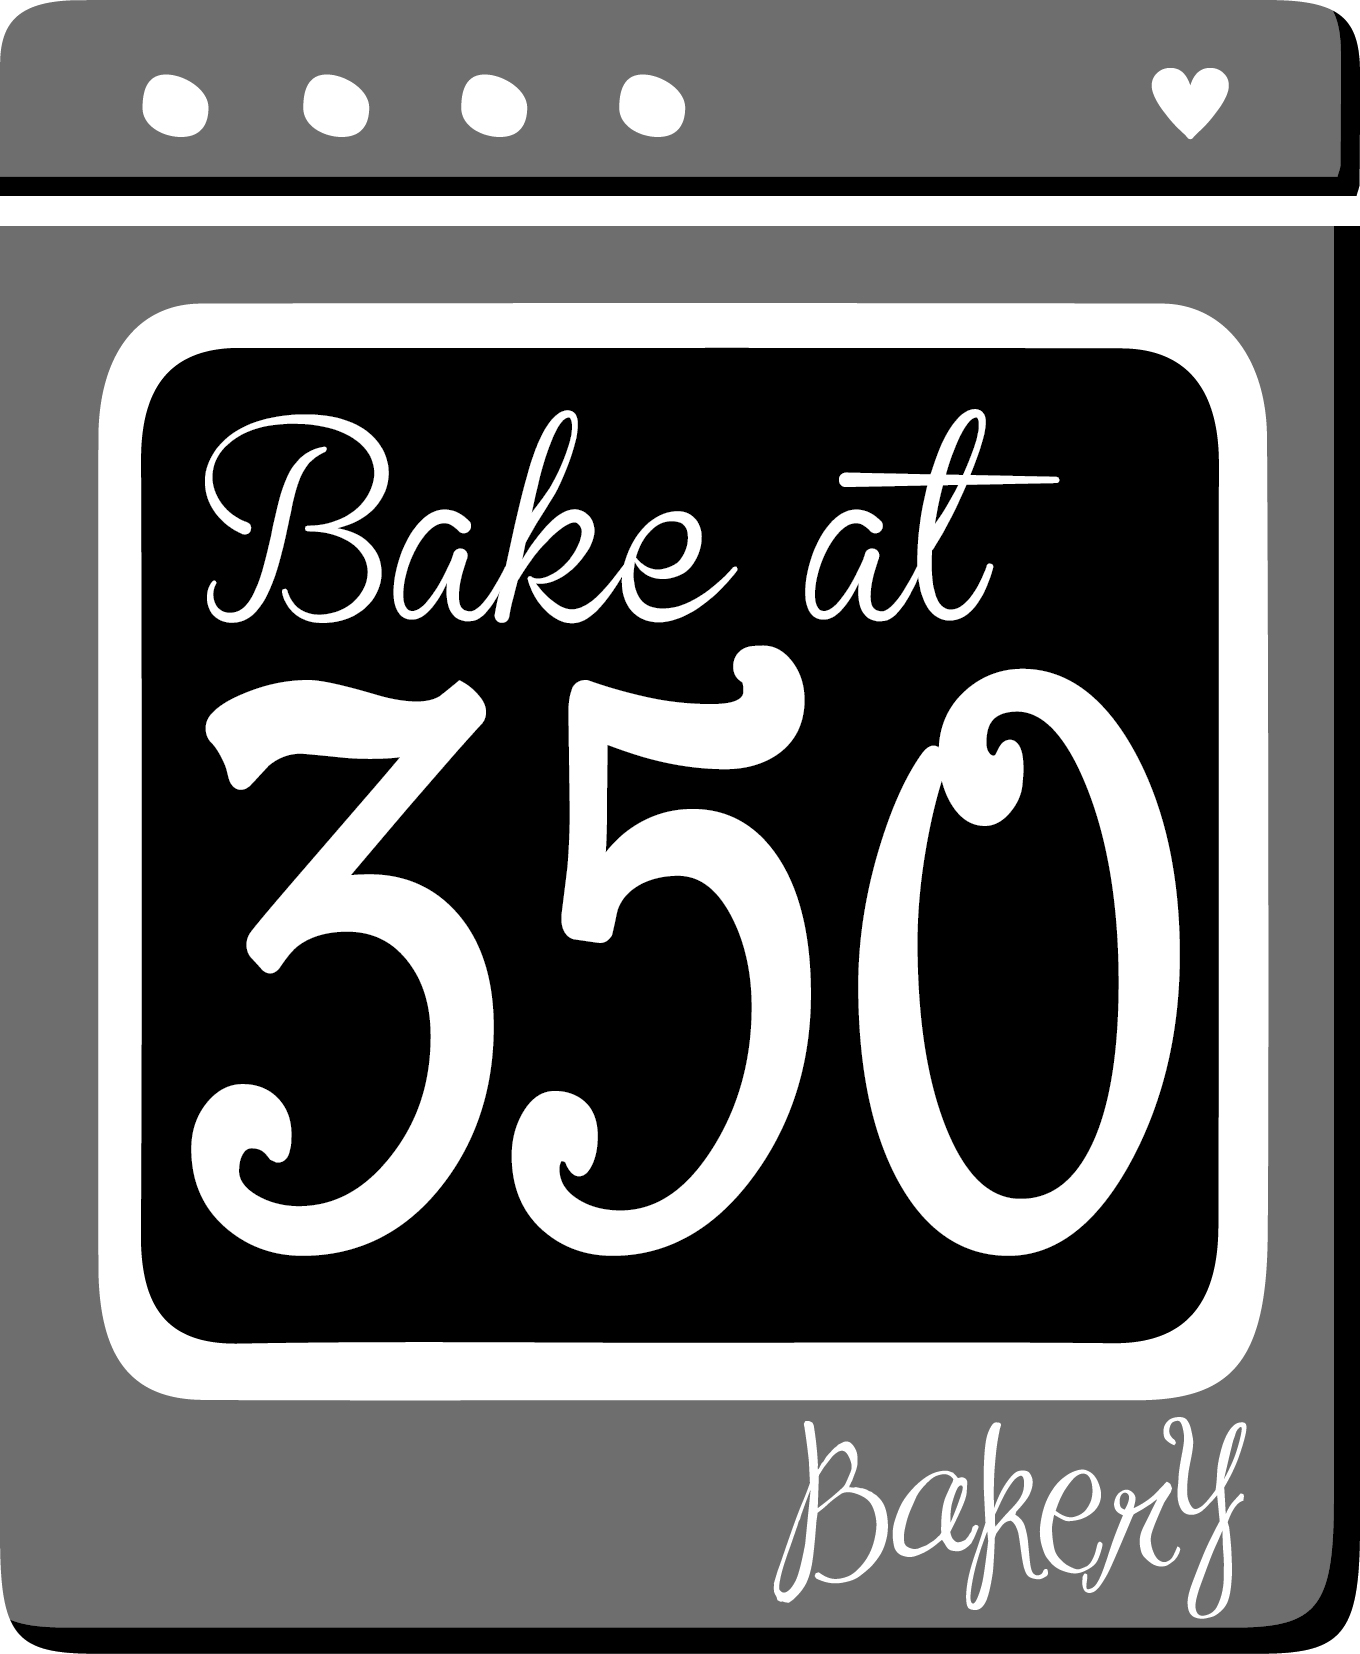 Bake at 350 Bakery